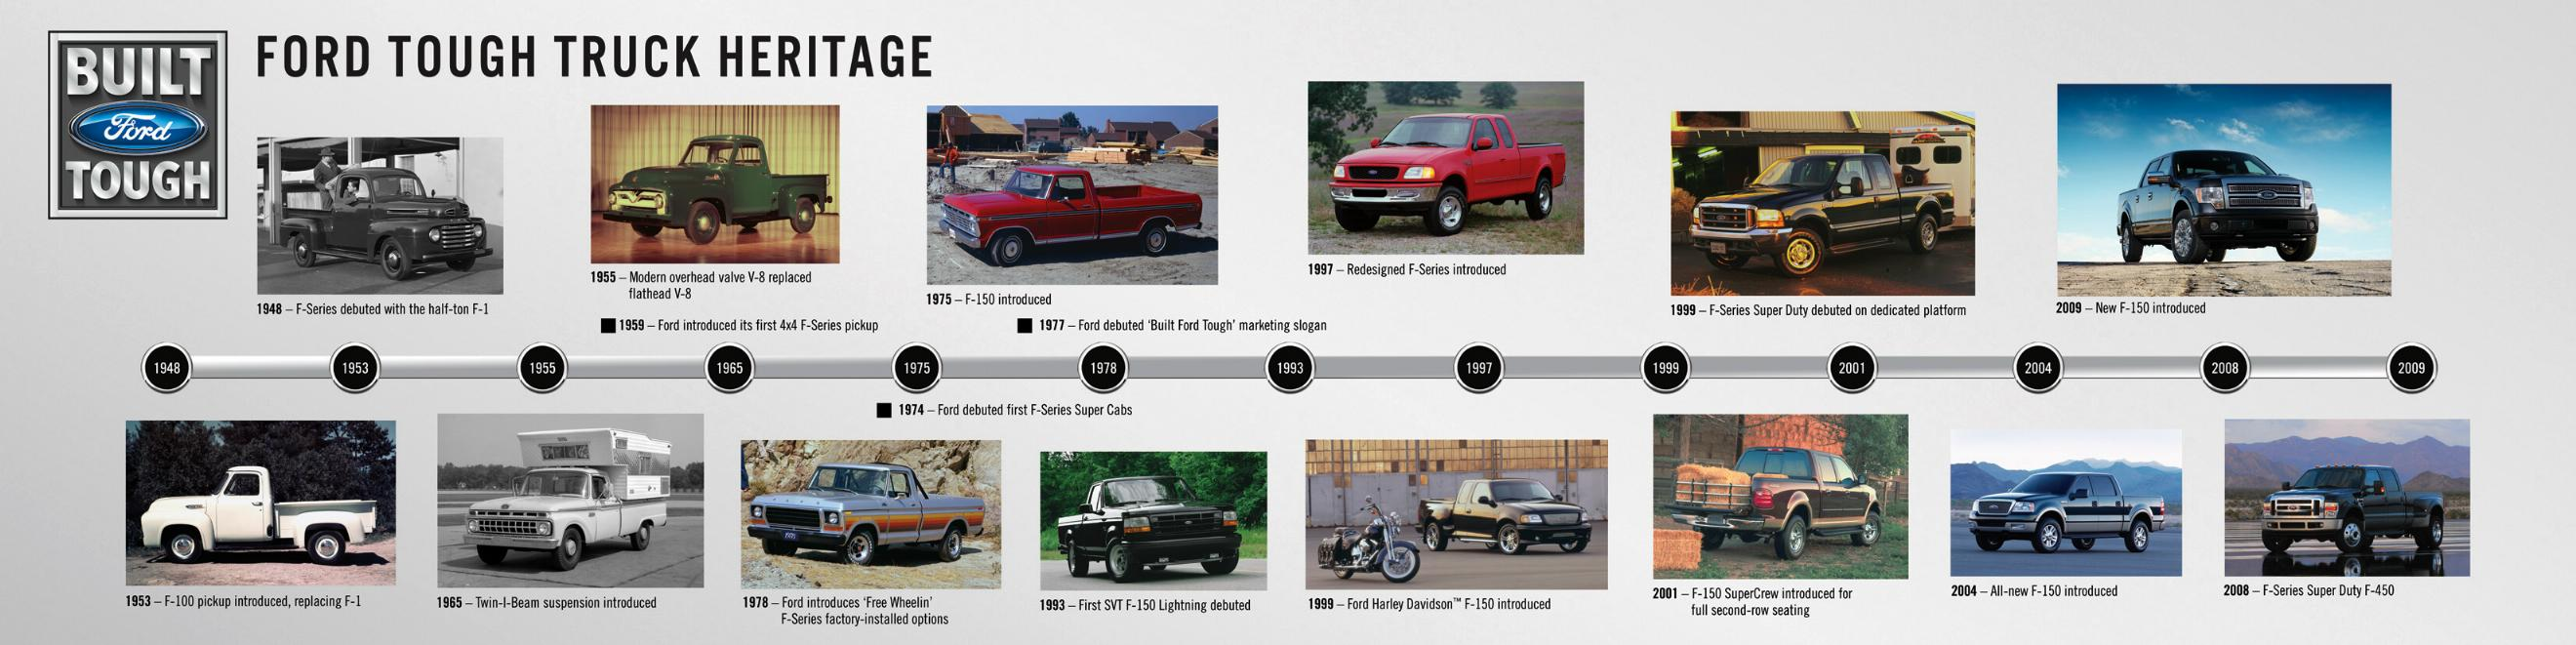 Ford f series timeline